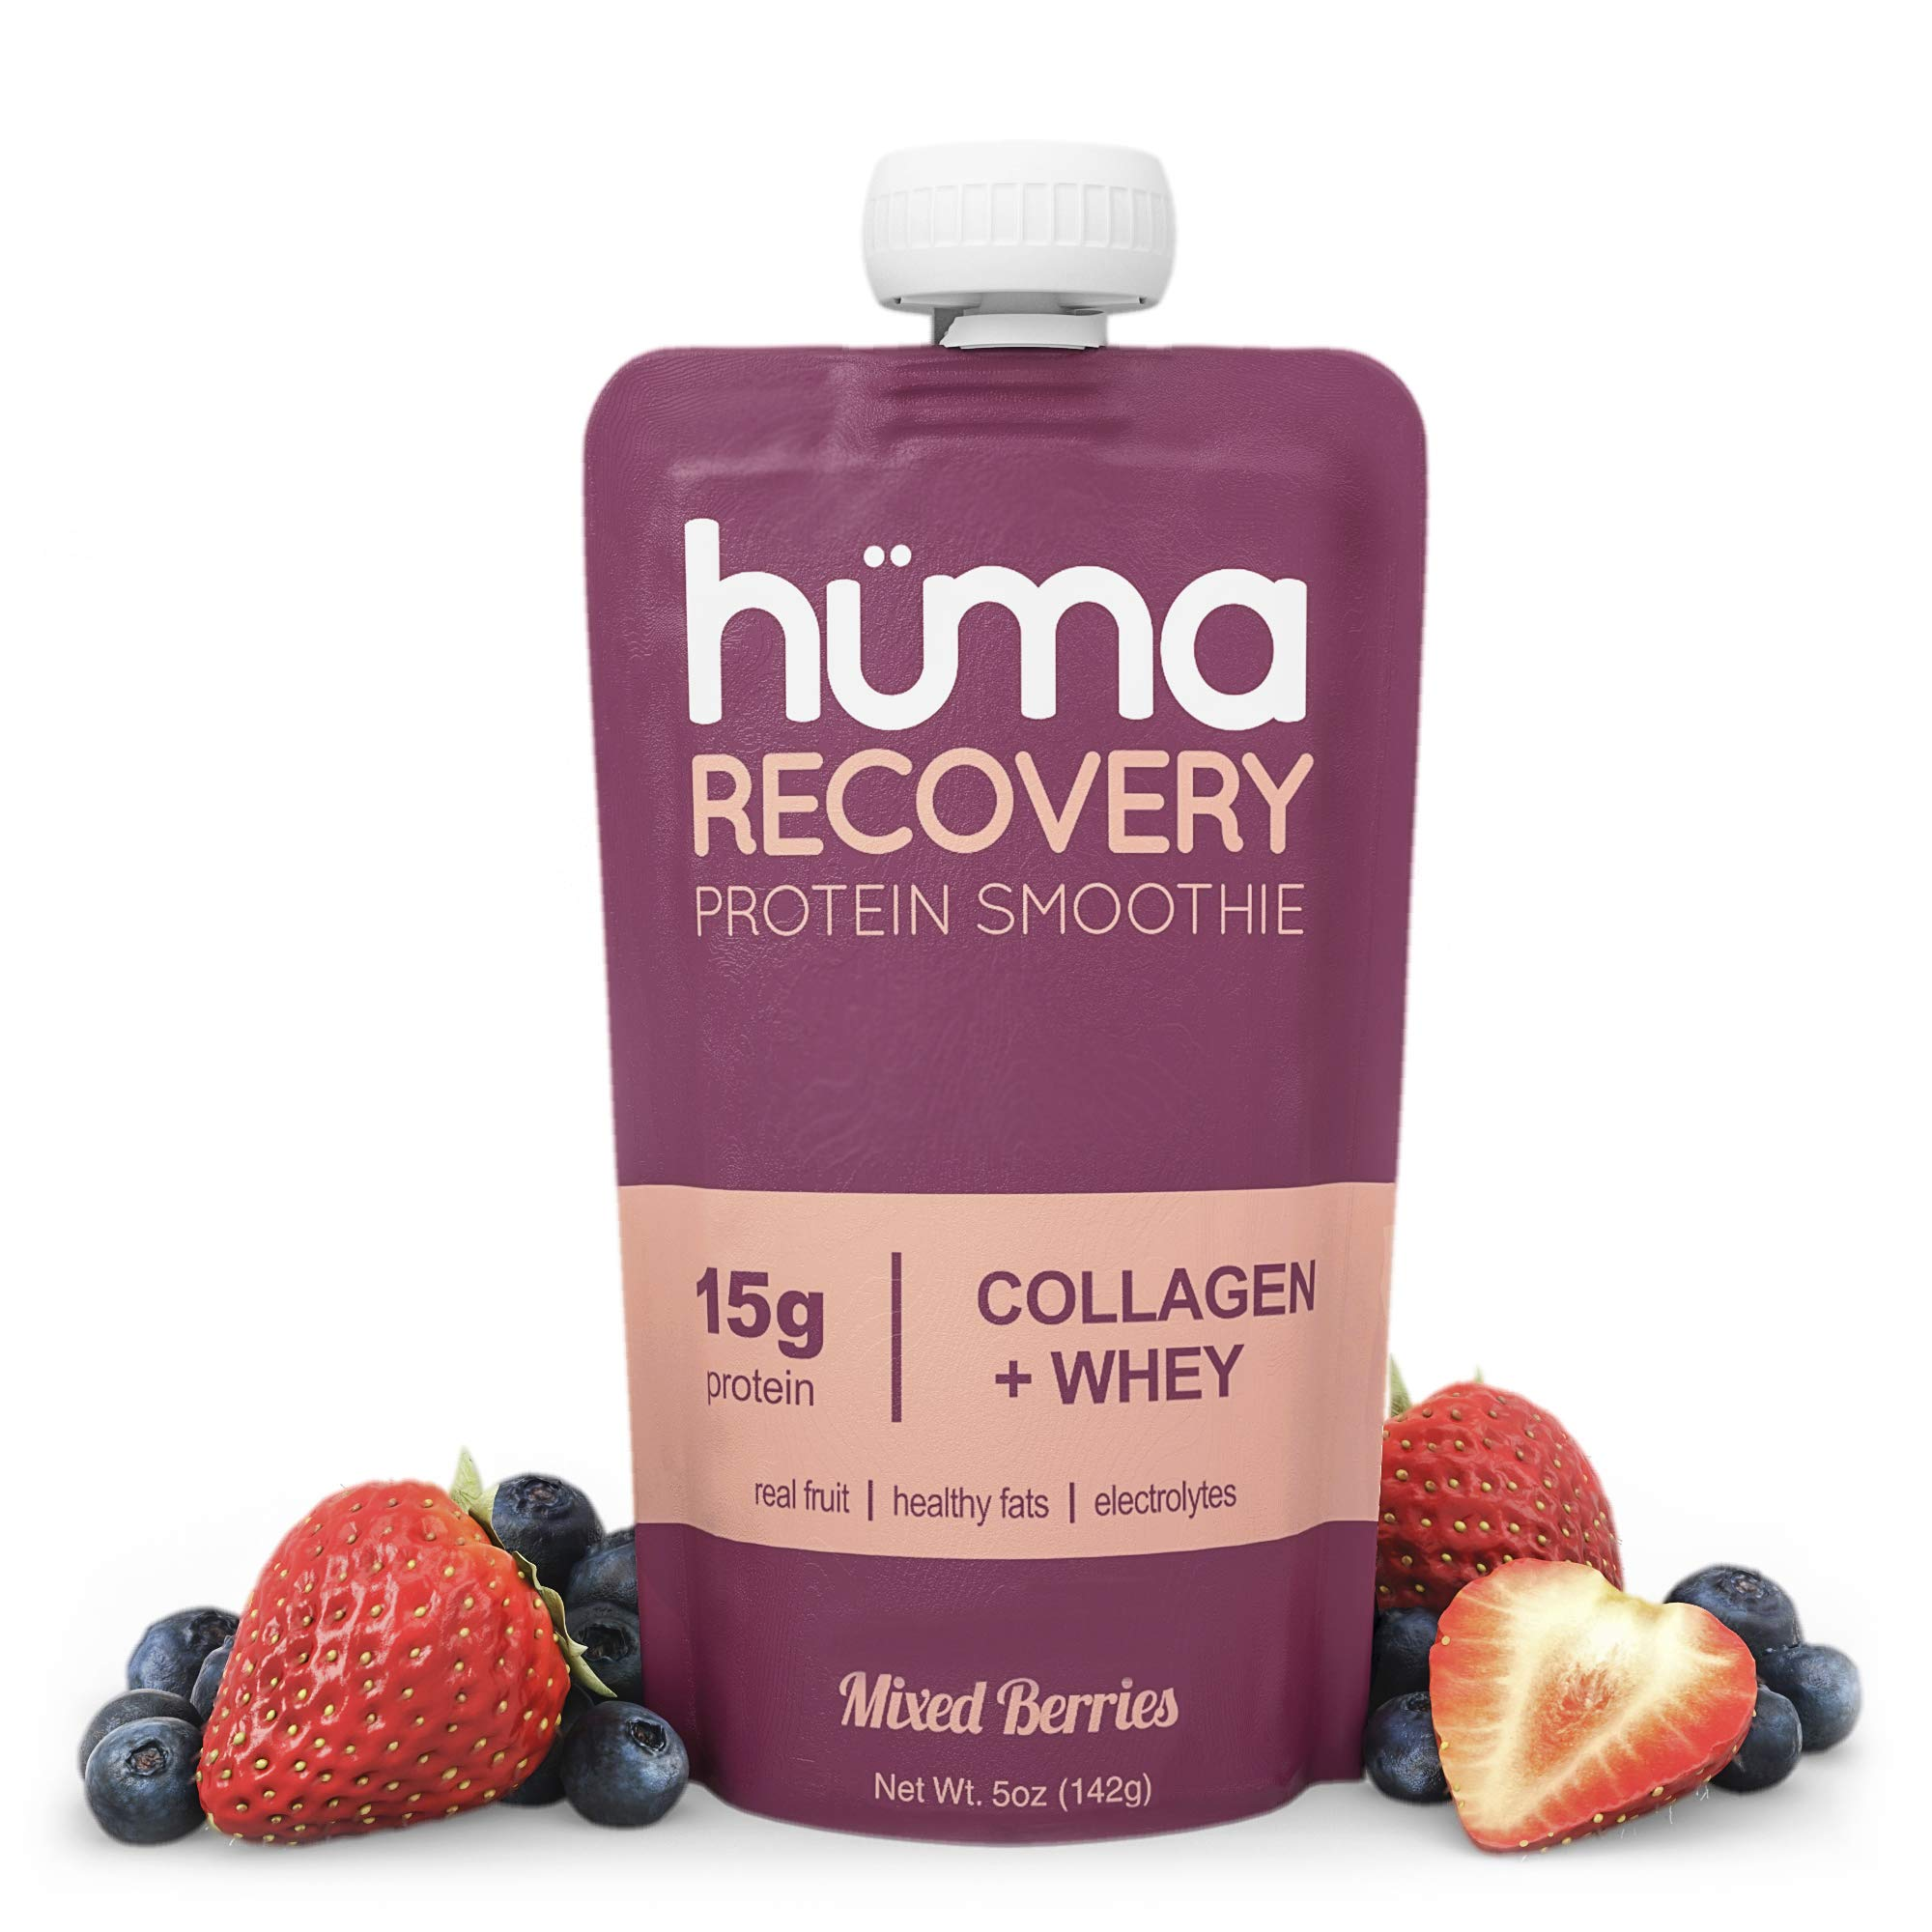 Huma Recovery Protein Smoothie, 20 Pouches – 15g Collagen + Whey Post Workout Recovery Drink – Ready-to-Drink Protein Shake with Real Fruit, Electrolytes, Healthy Fats